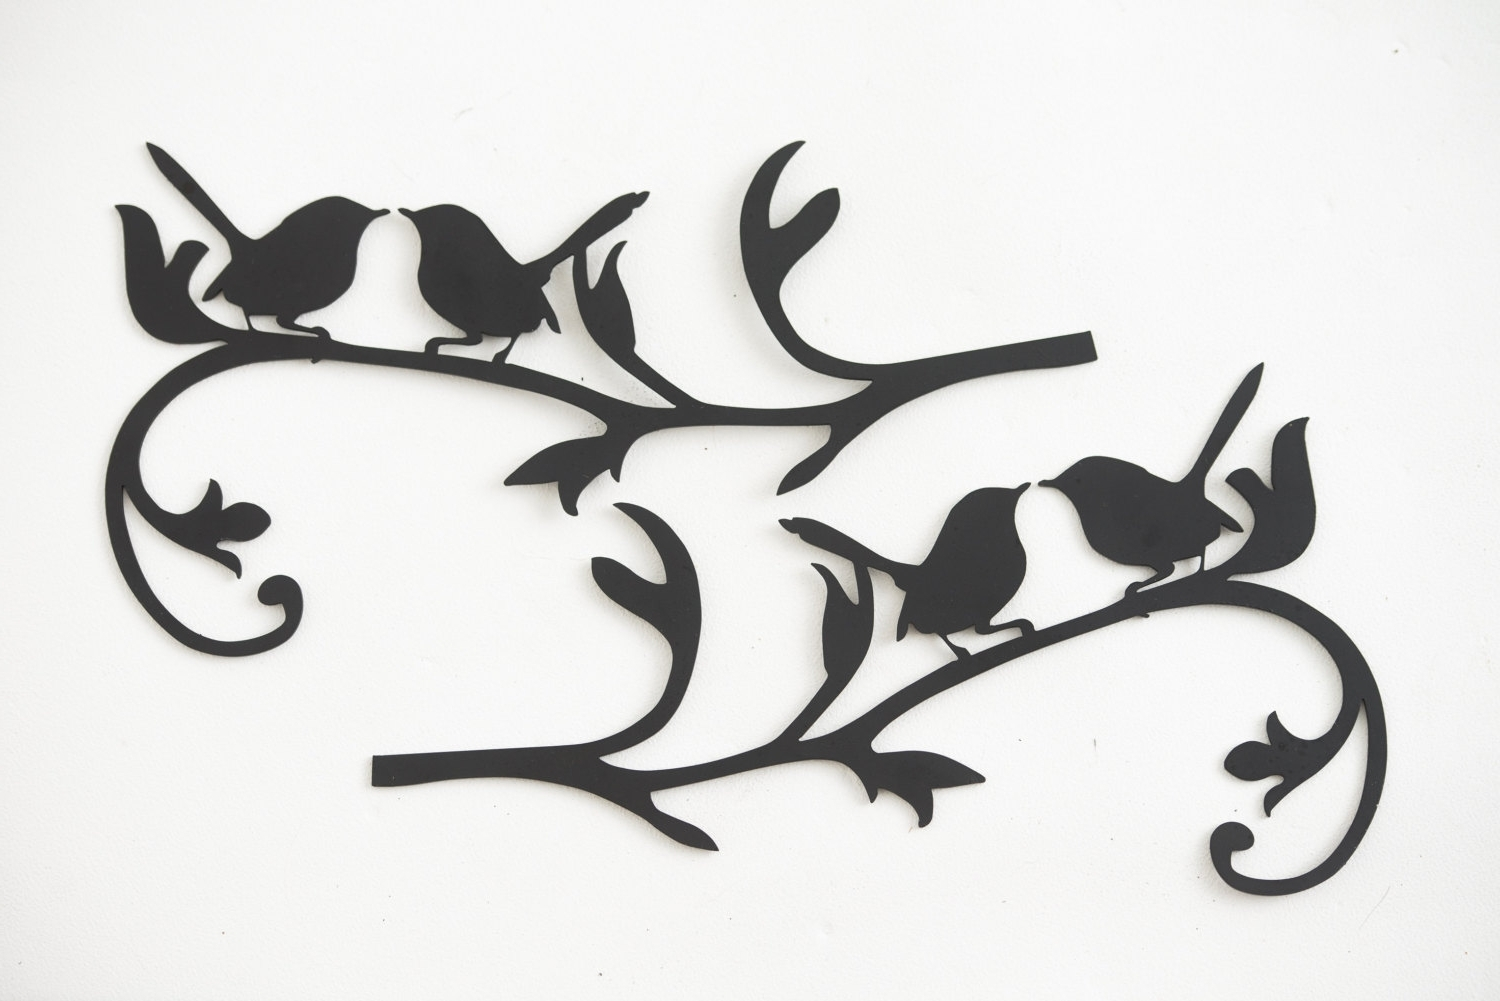 Current Wall Art Designs: Metal Bird Wall Art Hand Drawn And Laser Cut Inside Birds In Flight Metal Wall Art (View 6 of 15)